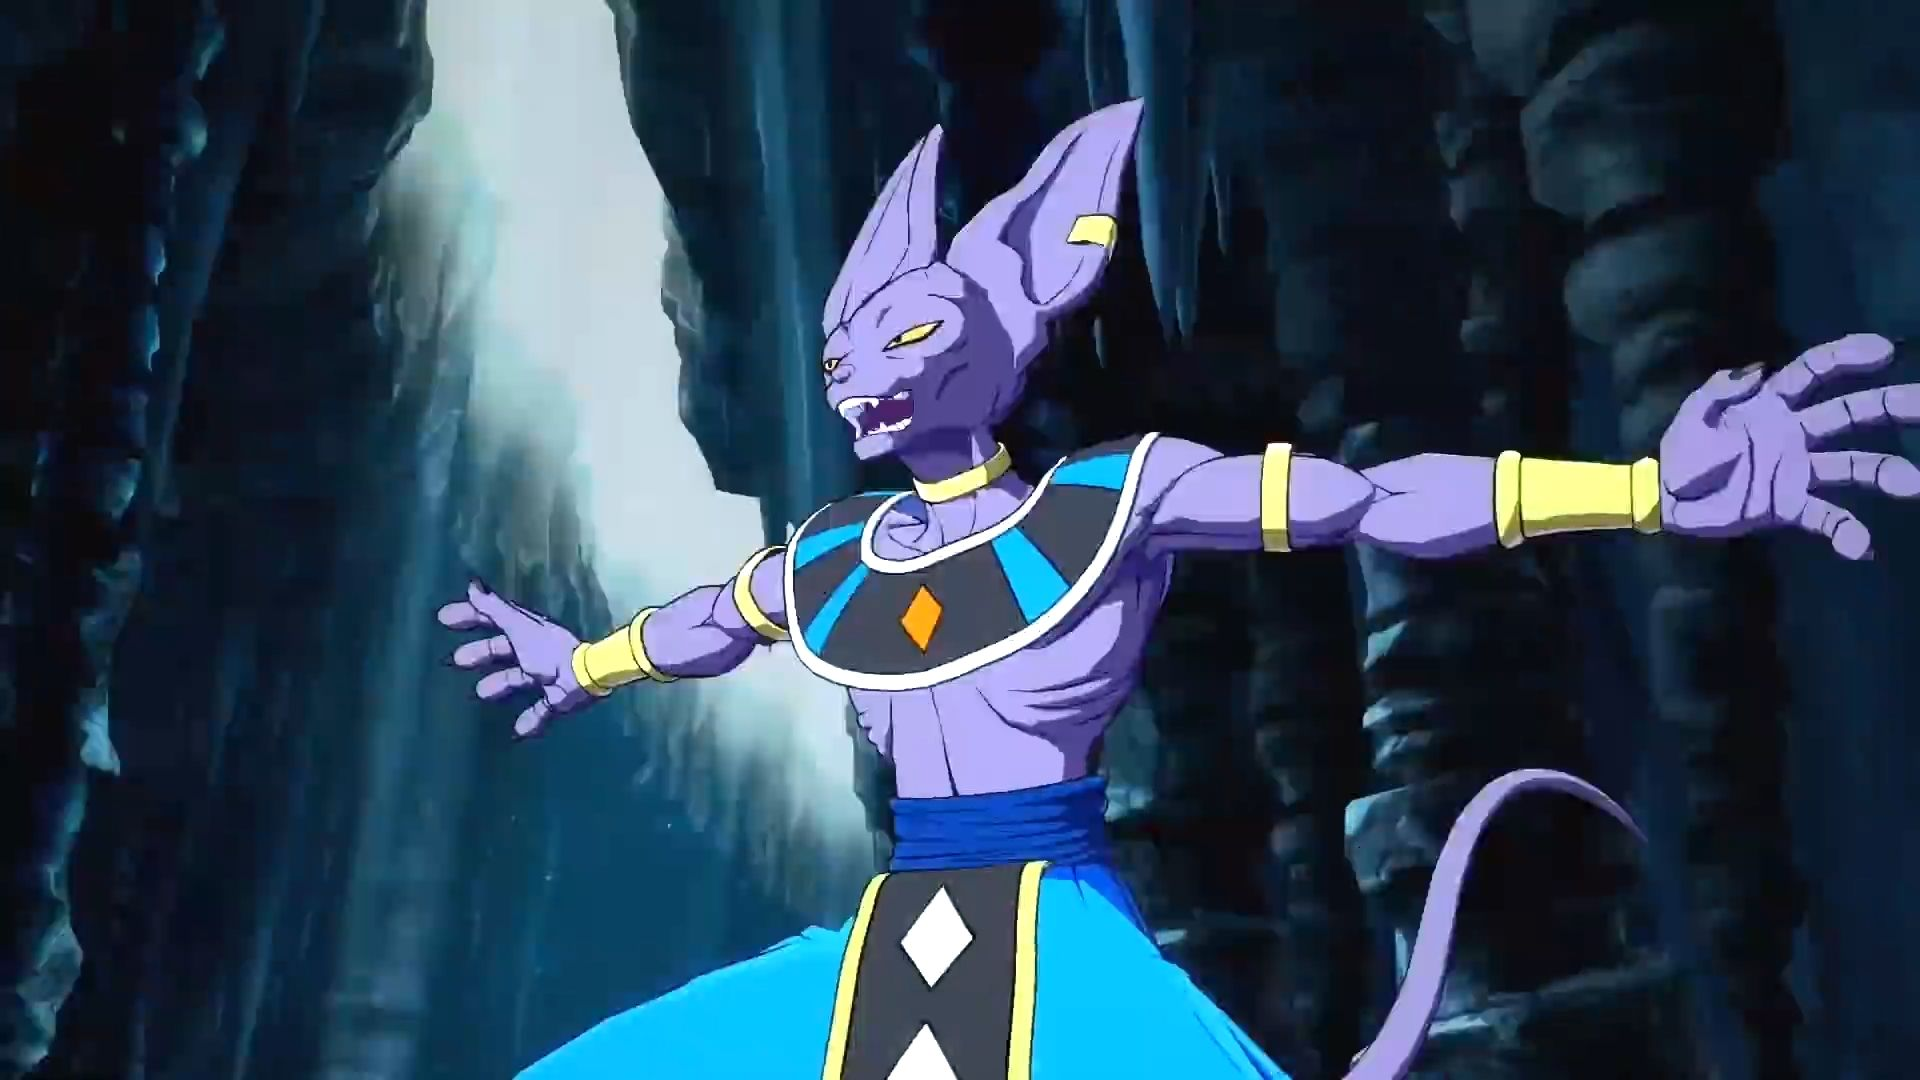 Pin by GiuseppeDiRosso on Beerus God of Destruction